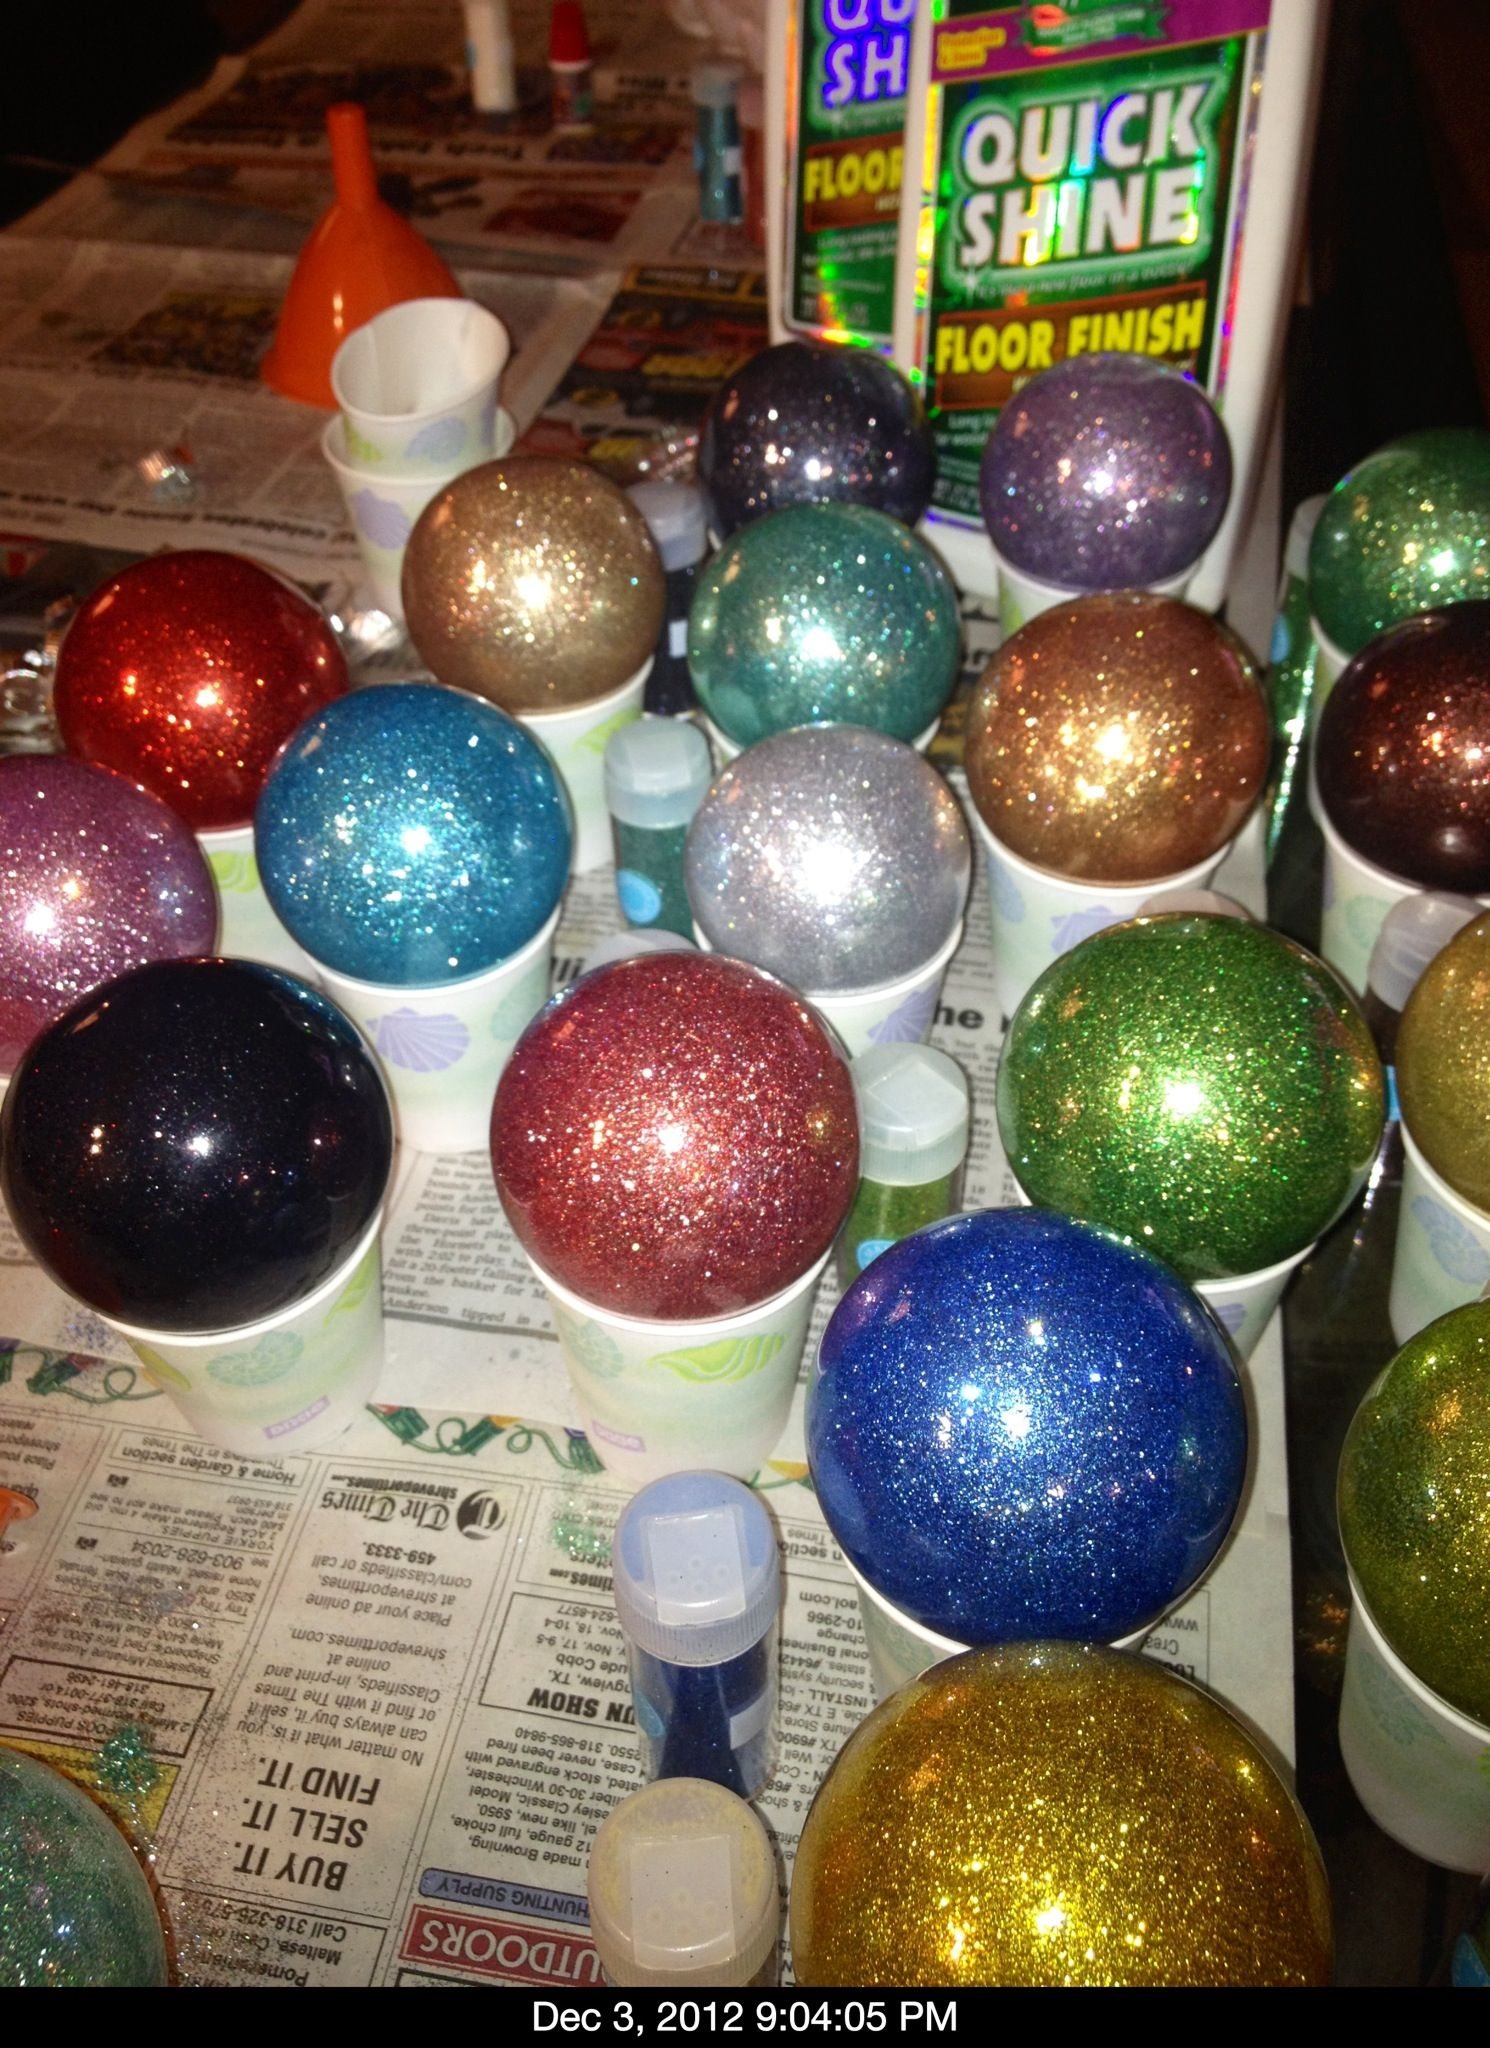 We Made The Home Made Christmas Balls Using Martha Stuart Glitter Quick Shine Floor Finish A Homemade Decor Safe Cleaning Products Quick Shine Floor Finish